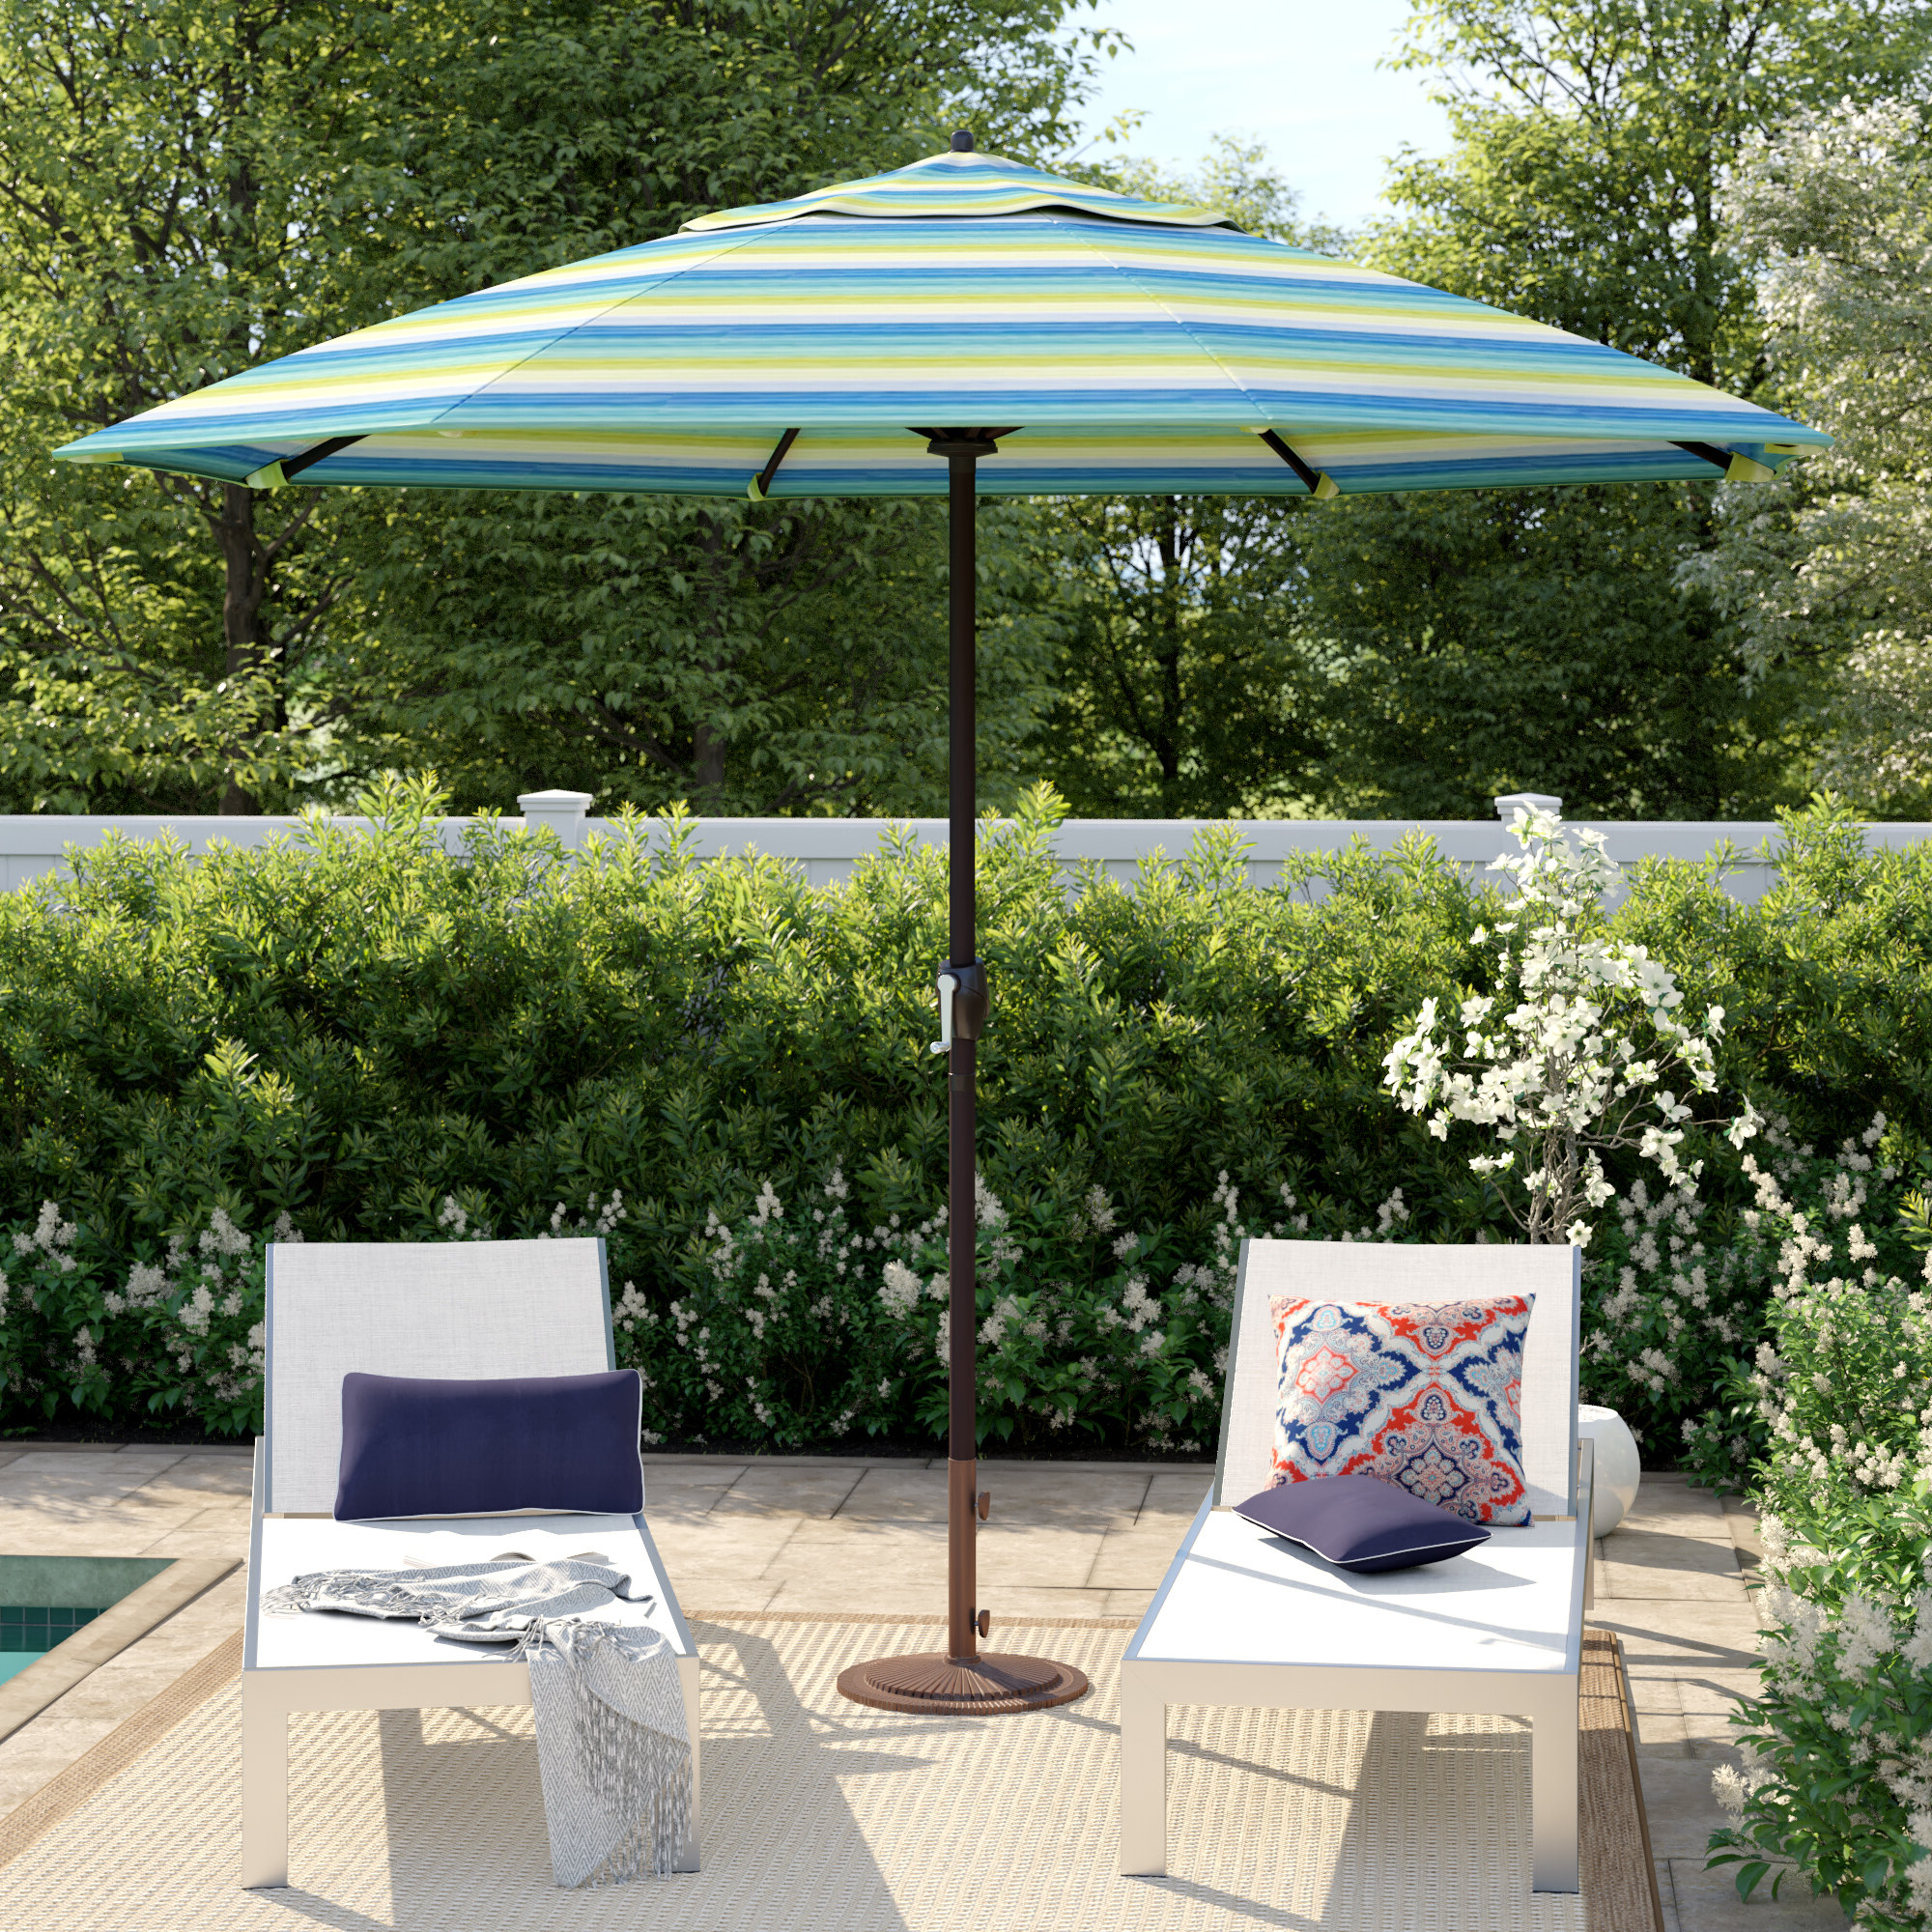 Most Popular Cardine 9' Market Sunbrella Umbrella With Mucci Madilyn Market Sunbrella Umbrellas (View 3 of 20)